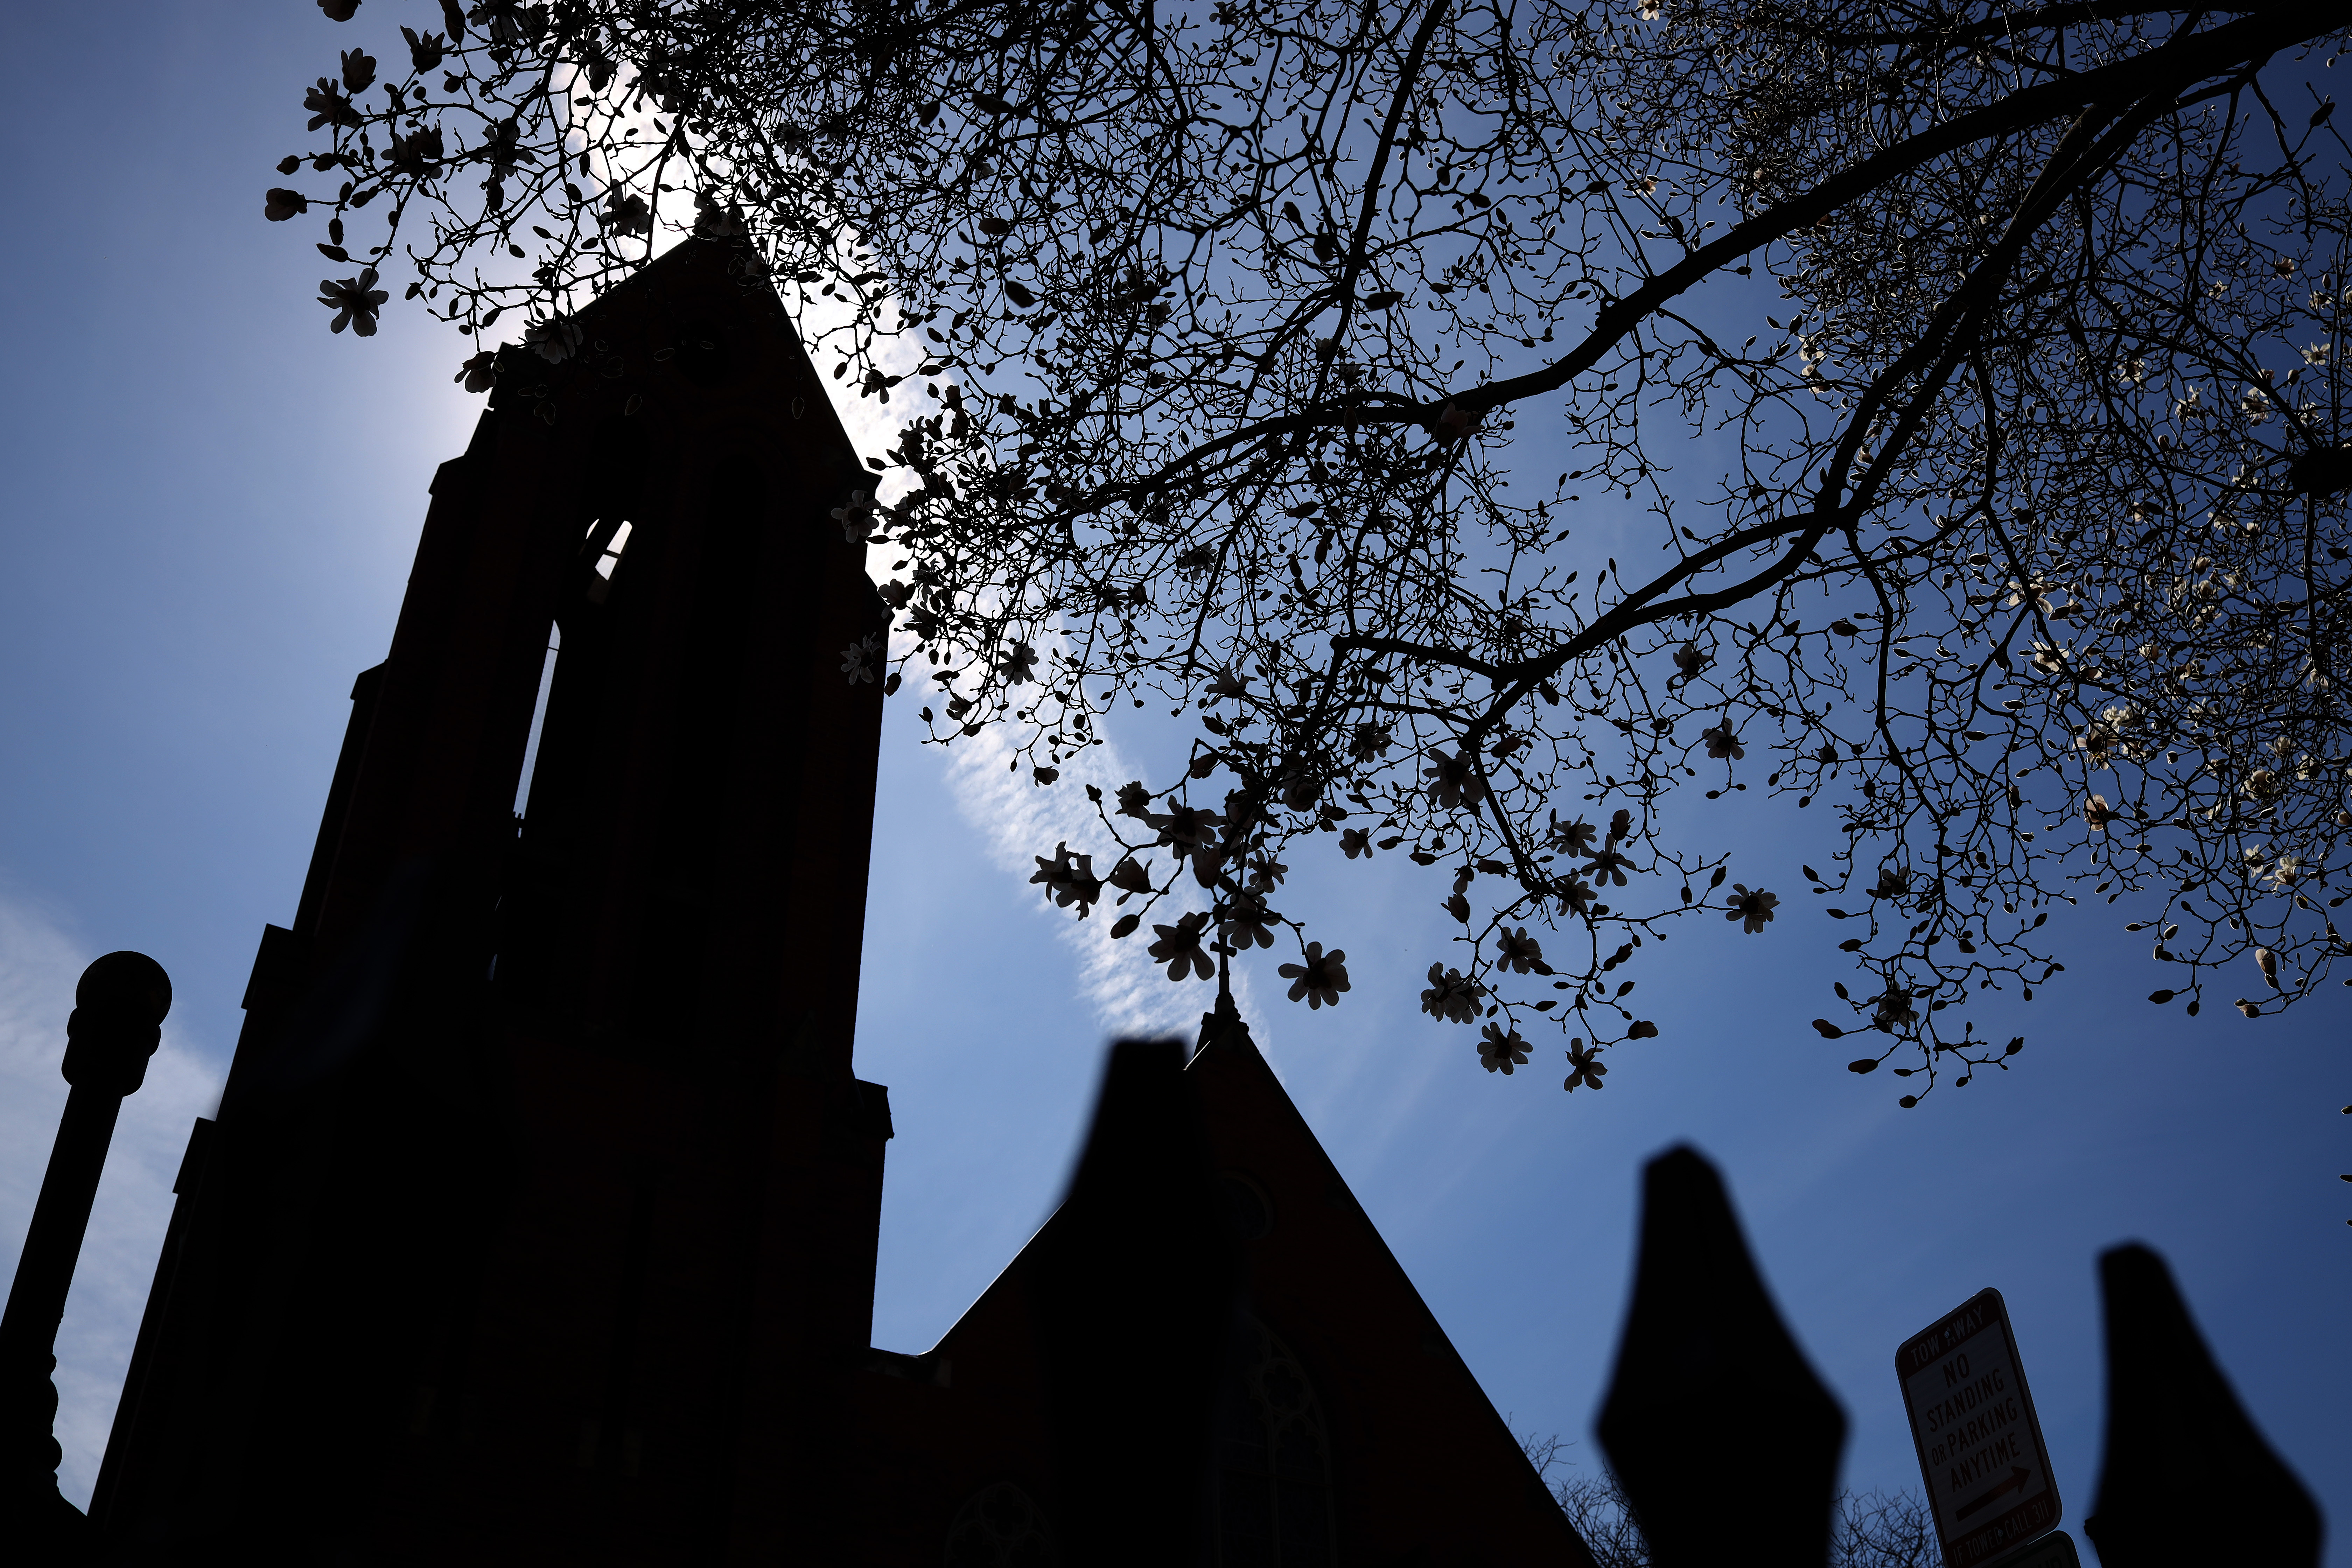 WASHINGTON, DC - MARCH 09: Christ Episcopal Church Georgetown is shown March 09, 2020 in Washington, DC. Members of the congregation have been asked to self-quarantine following possible exposure to the Rev. Timothy Cole, the church rector and the first known coronavirus patient in the nation's capital. (Photo by Win McNamee/Getty Images)